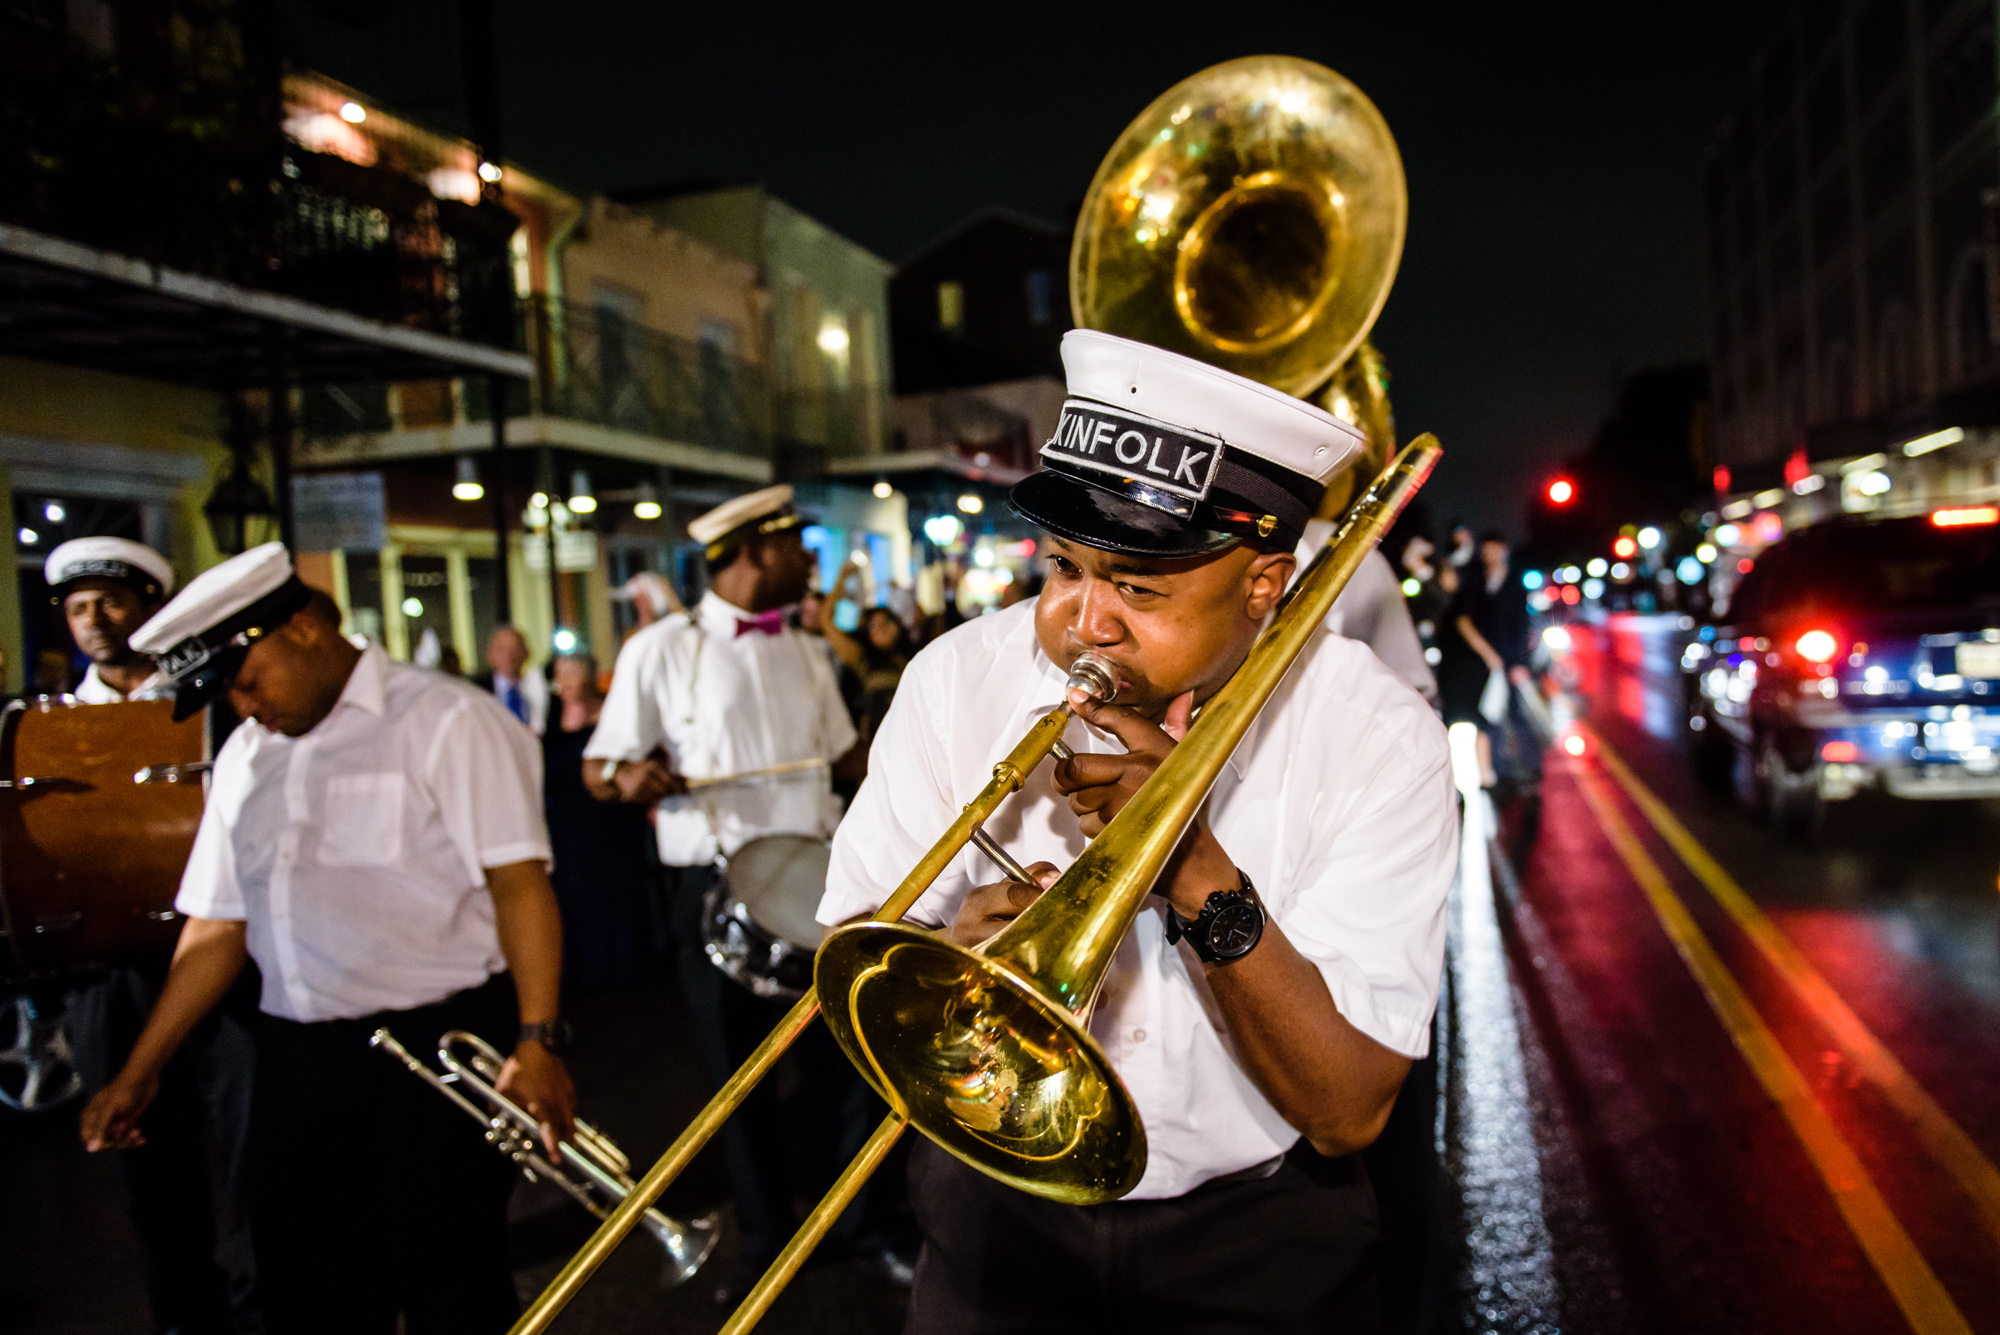 Kinfolk brass band leading a second line parade through the streets of the French Quarter